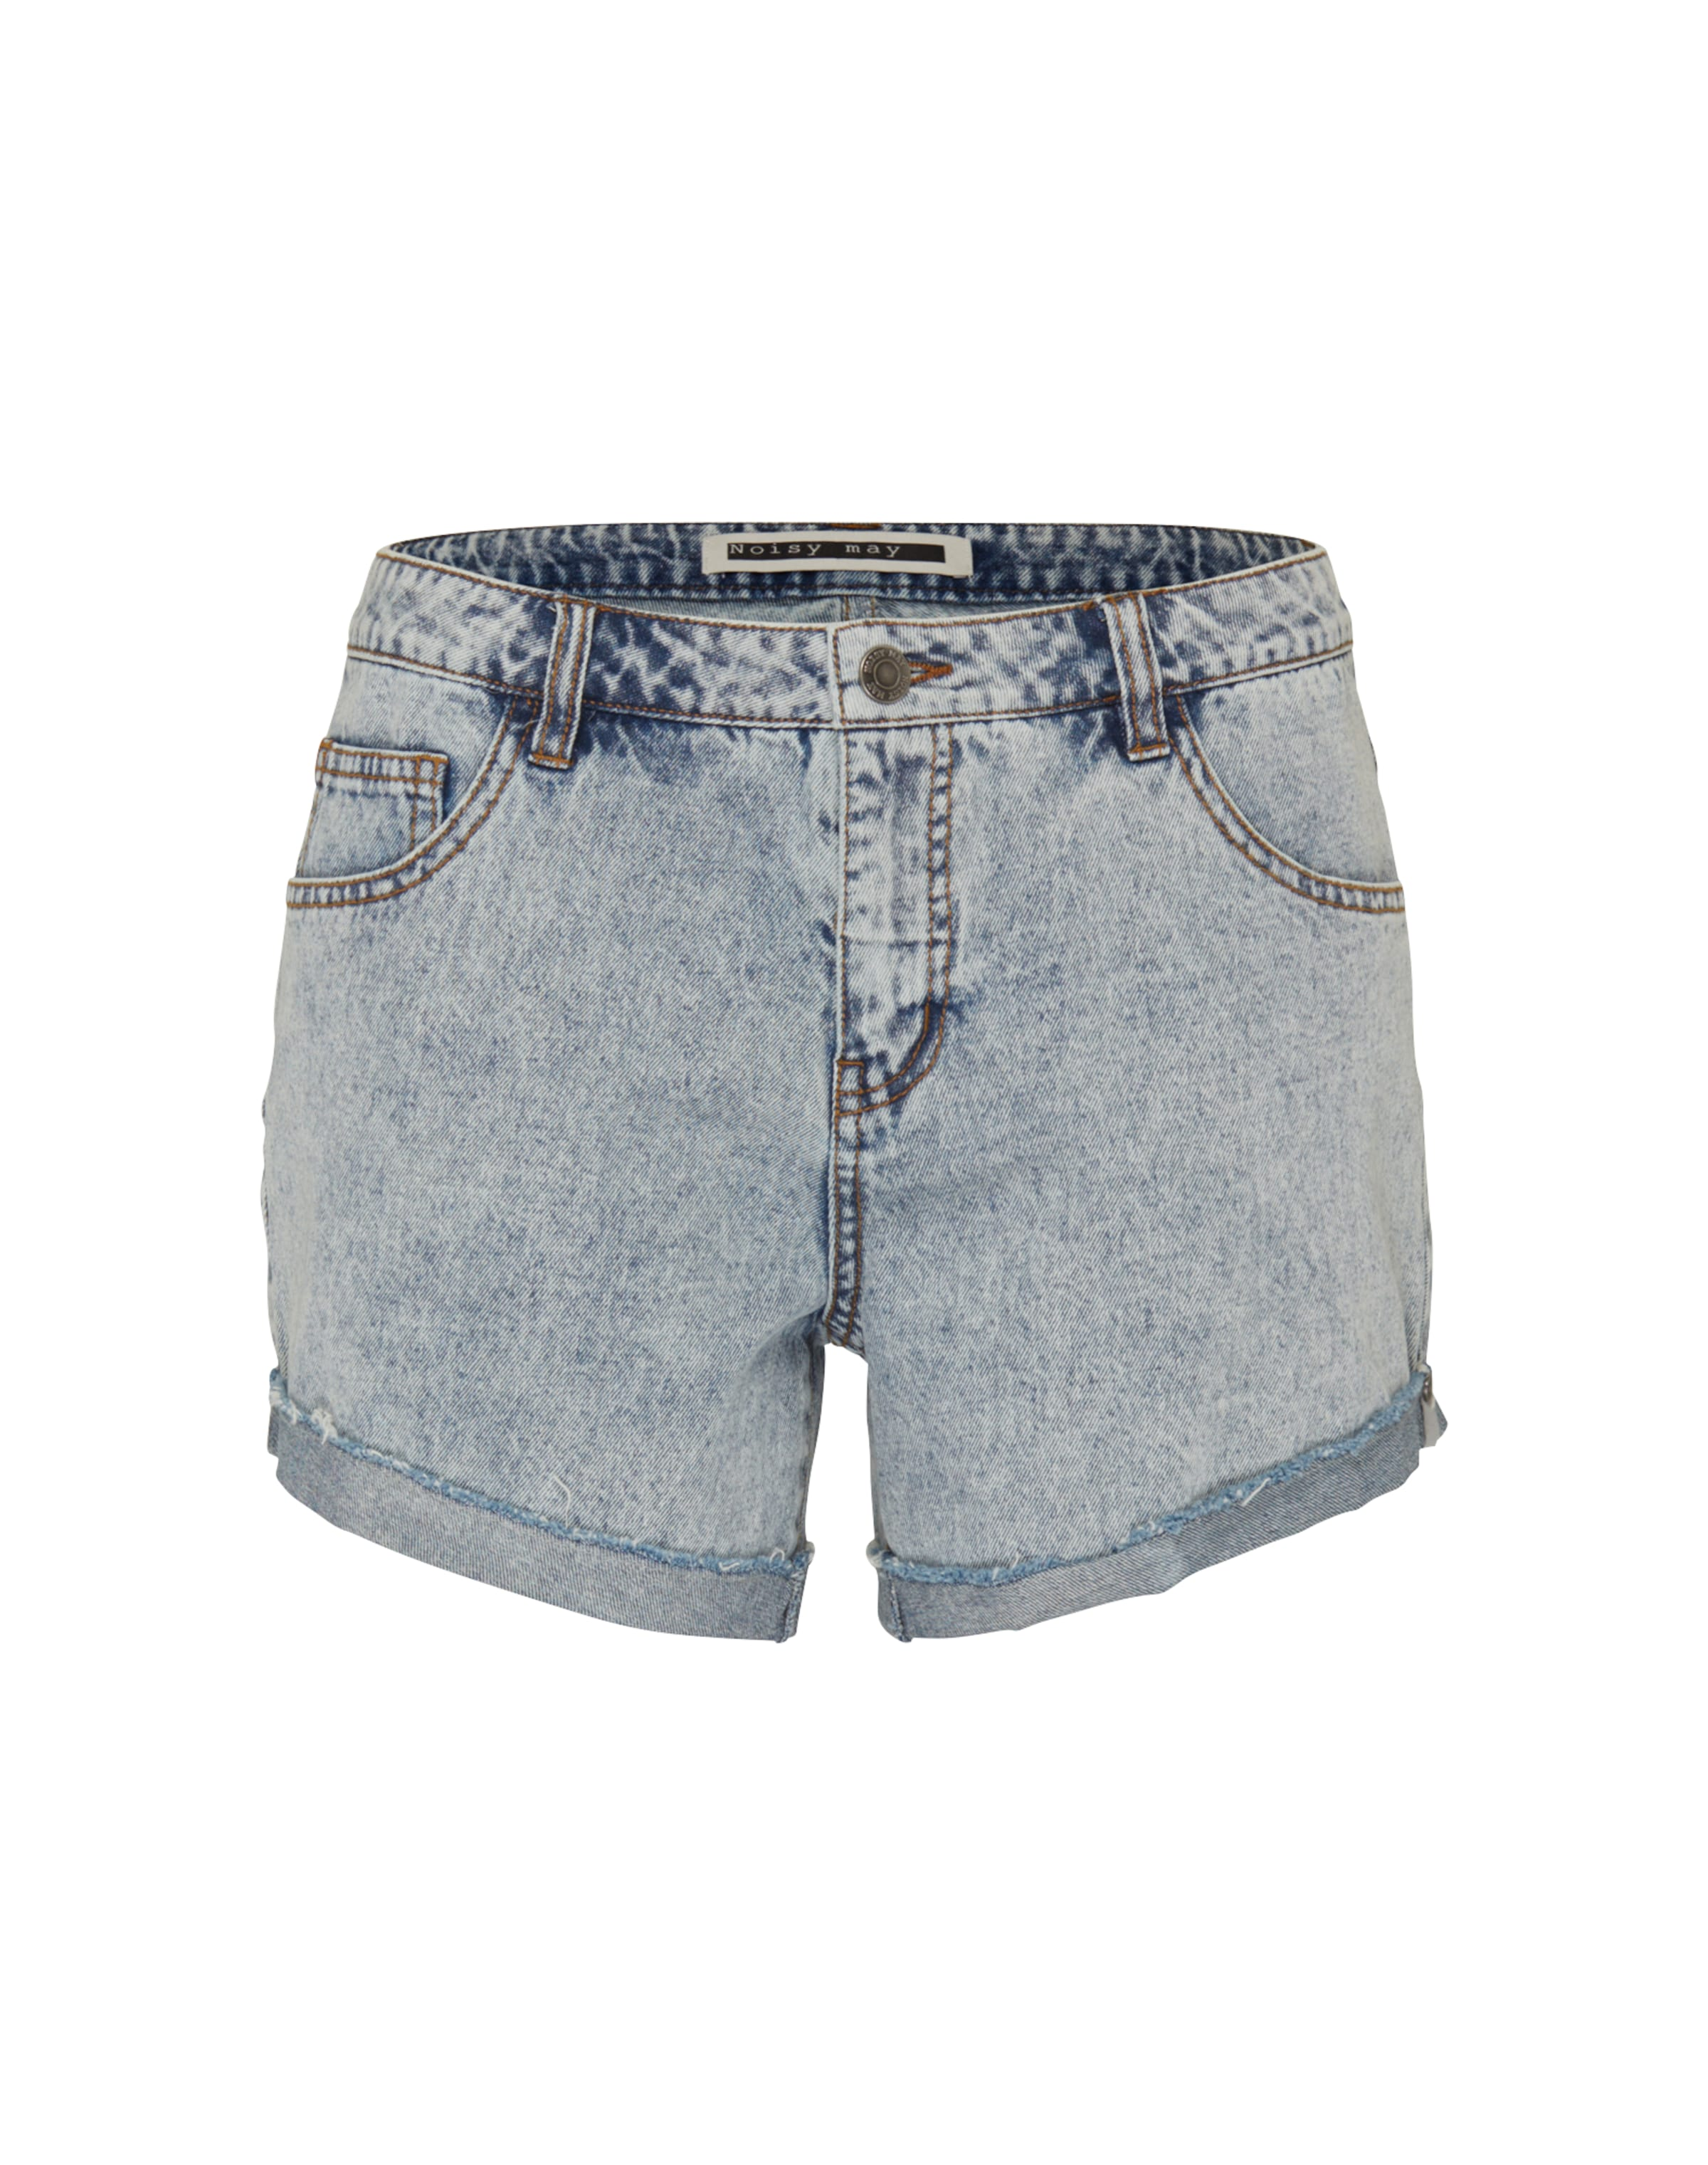 'NMFRAN' Denim Shorts